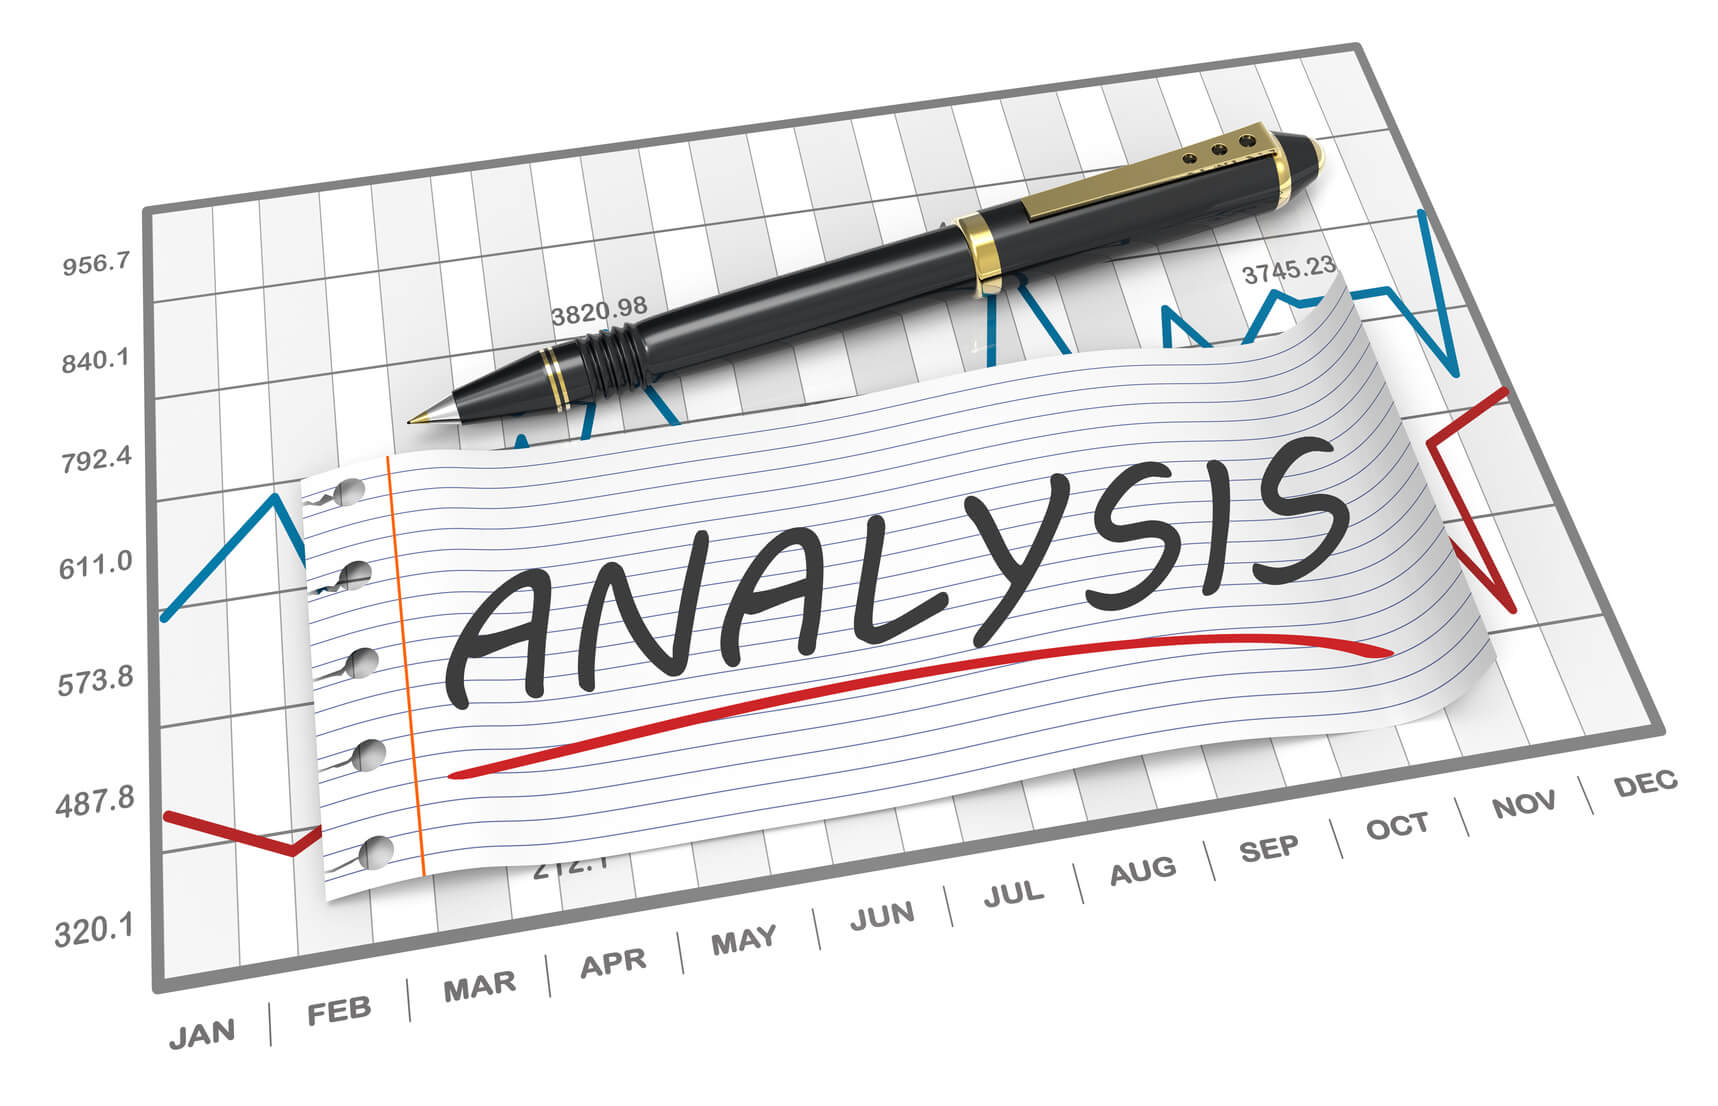 What's the difference between business intelligence and predictive analytics?